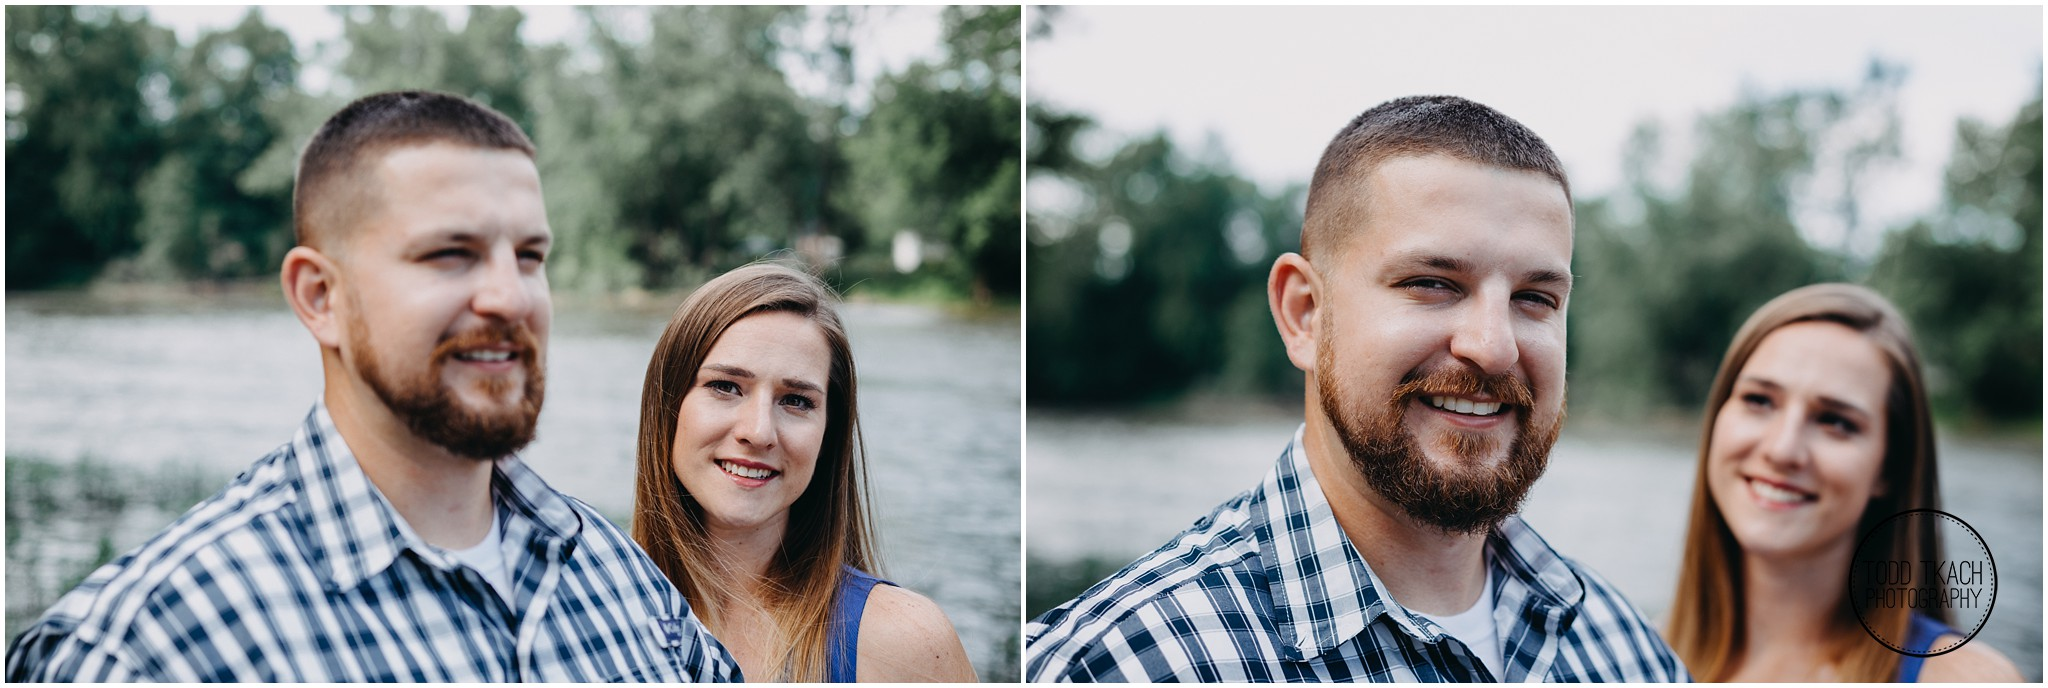 Kim & Brandon Engagement - Split Screen Portrait